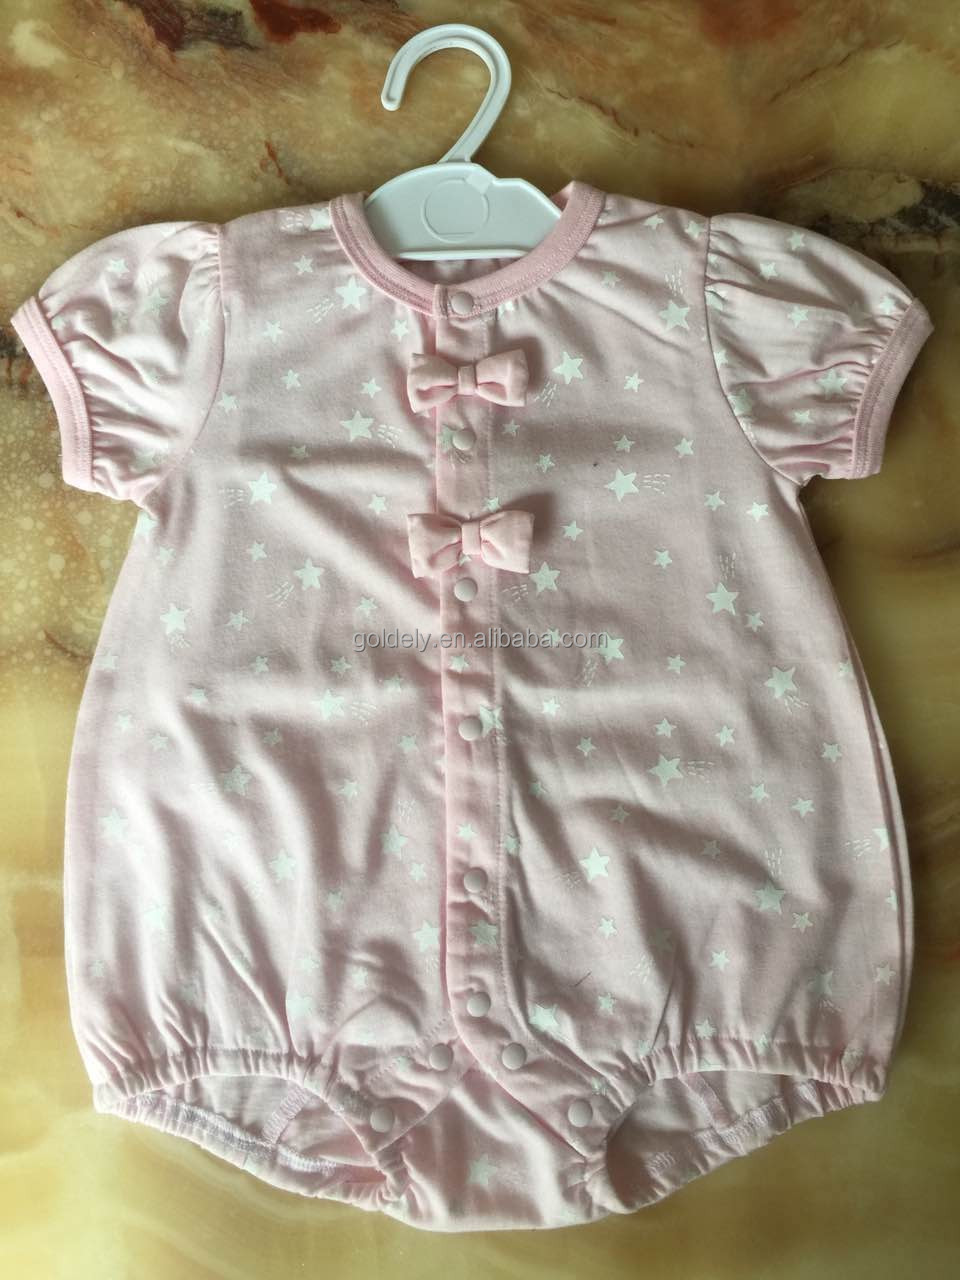 baby outlet clothes solid plain dyed no printing colorful rompers